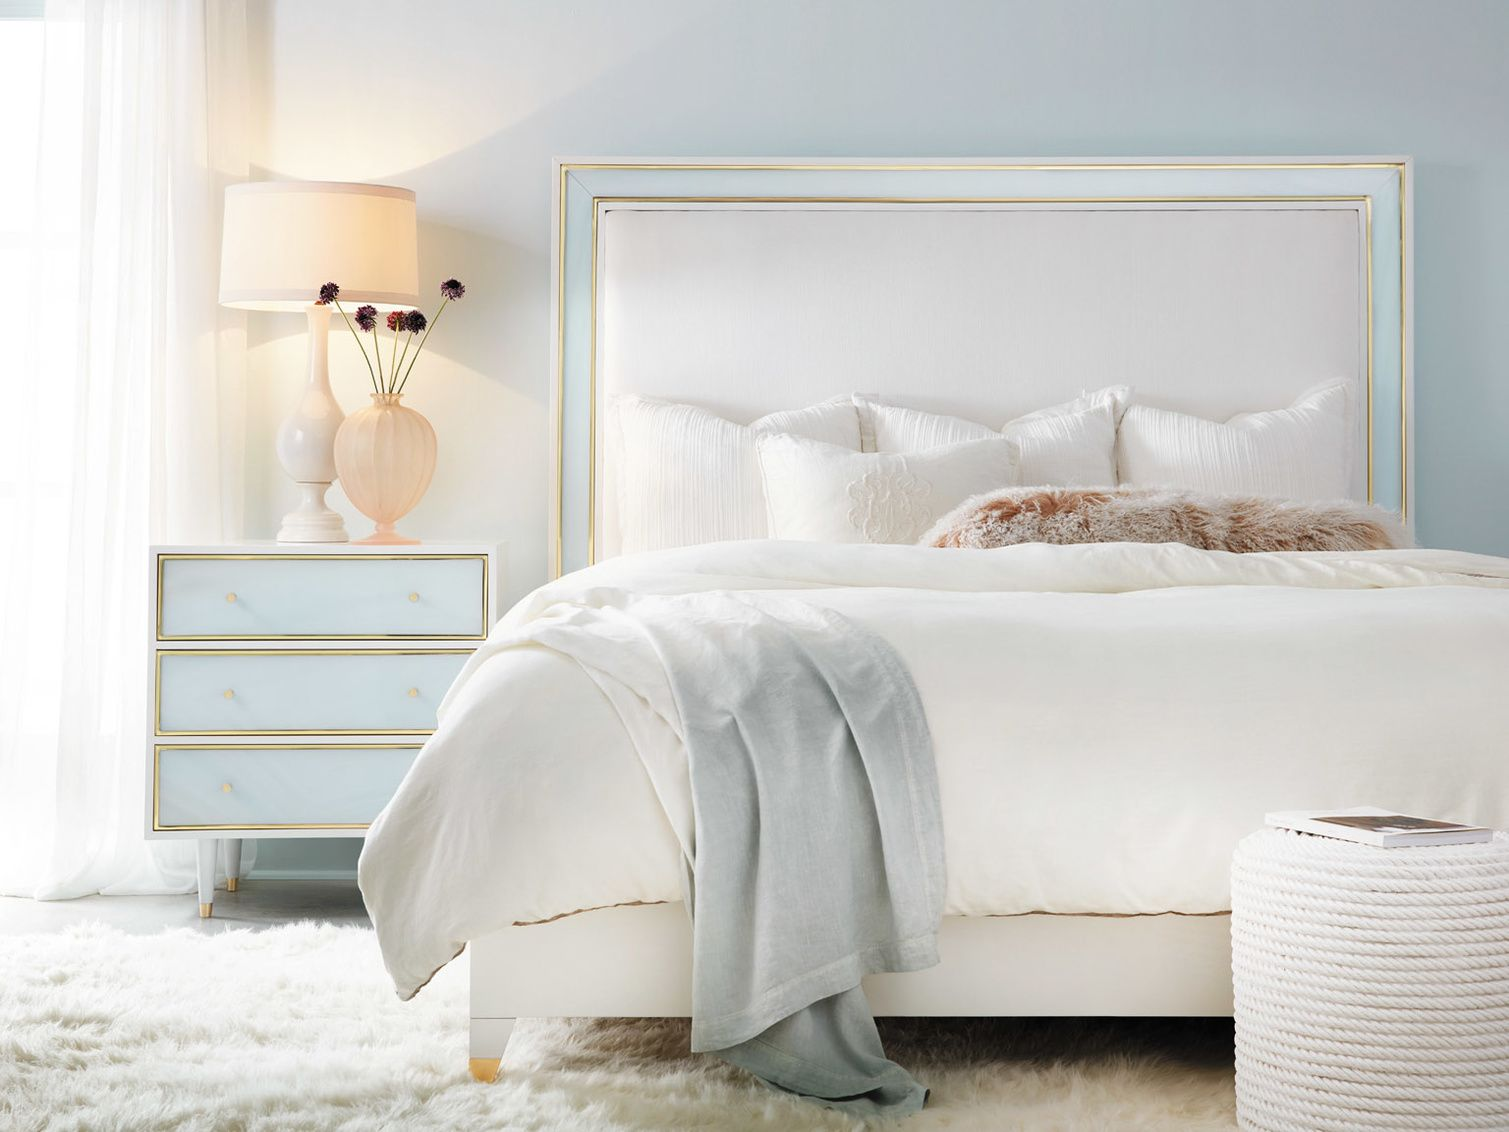 Seaglass Bed From Somerset Bay Furniture Interiordesign Bedroom Sweetdreams Furniture Headboard Bed Furniture Modern Bedroom Design British Furniture